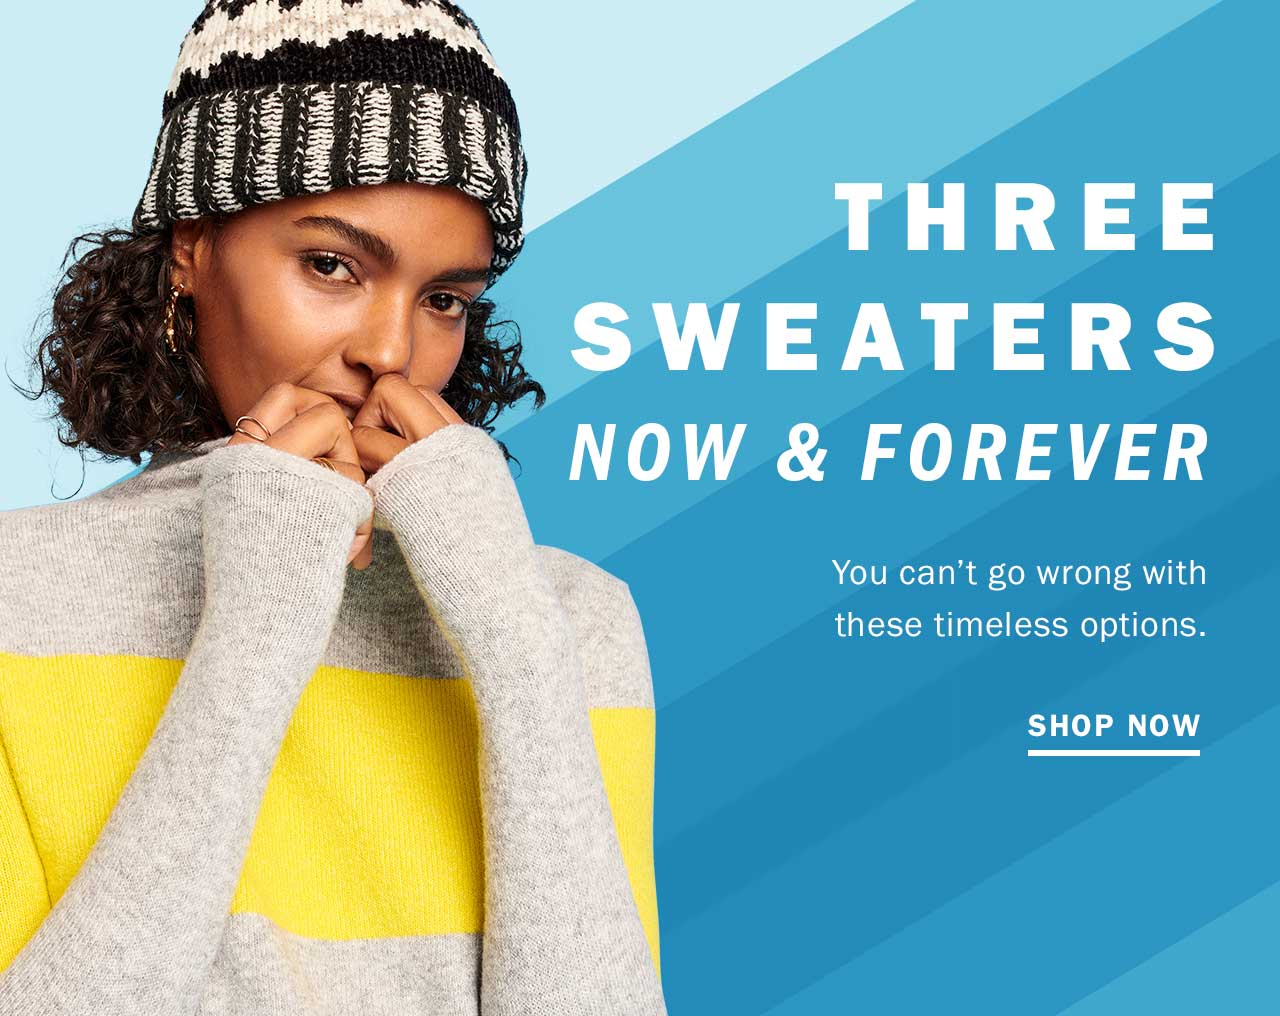 Three sweaters now & forever